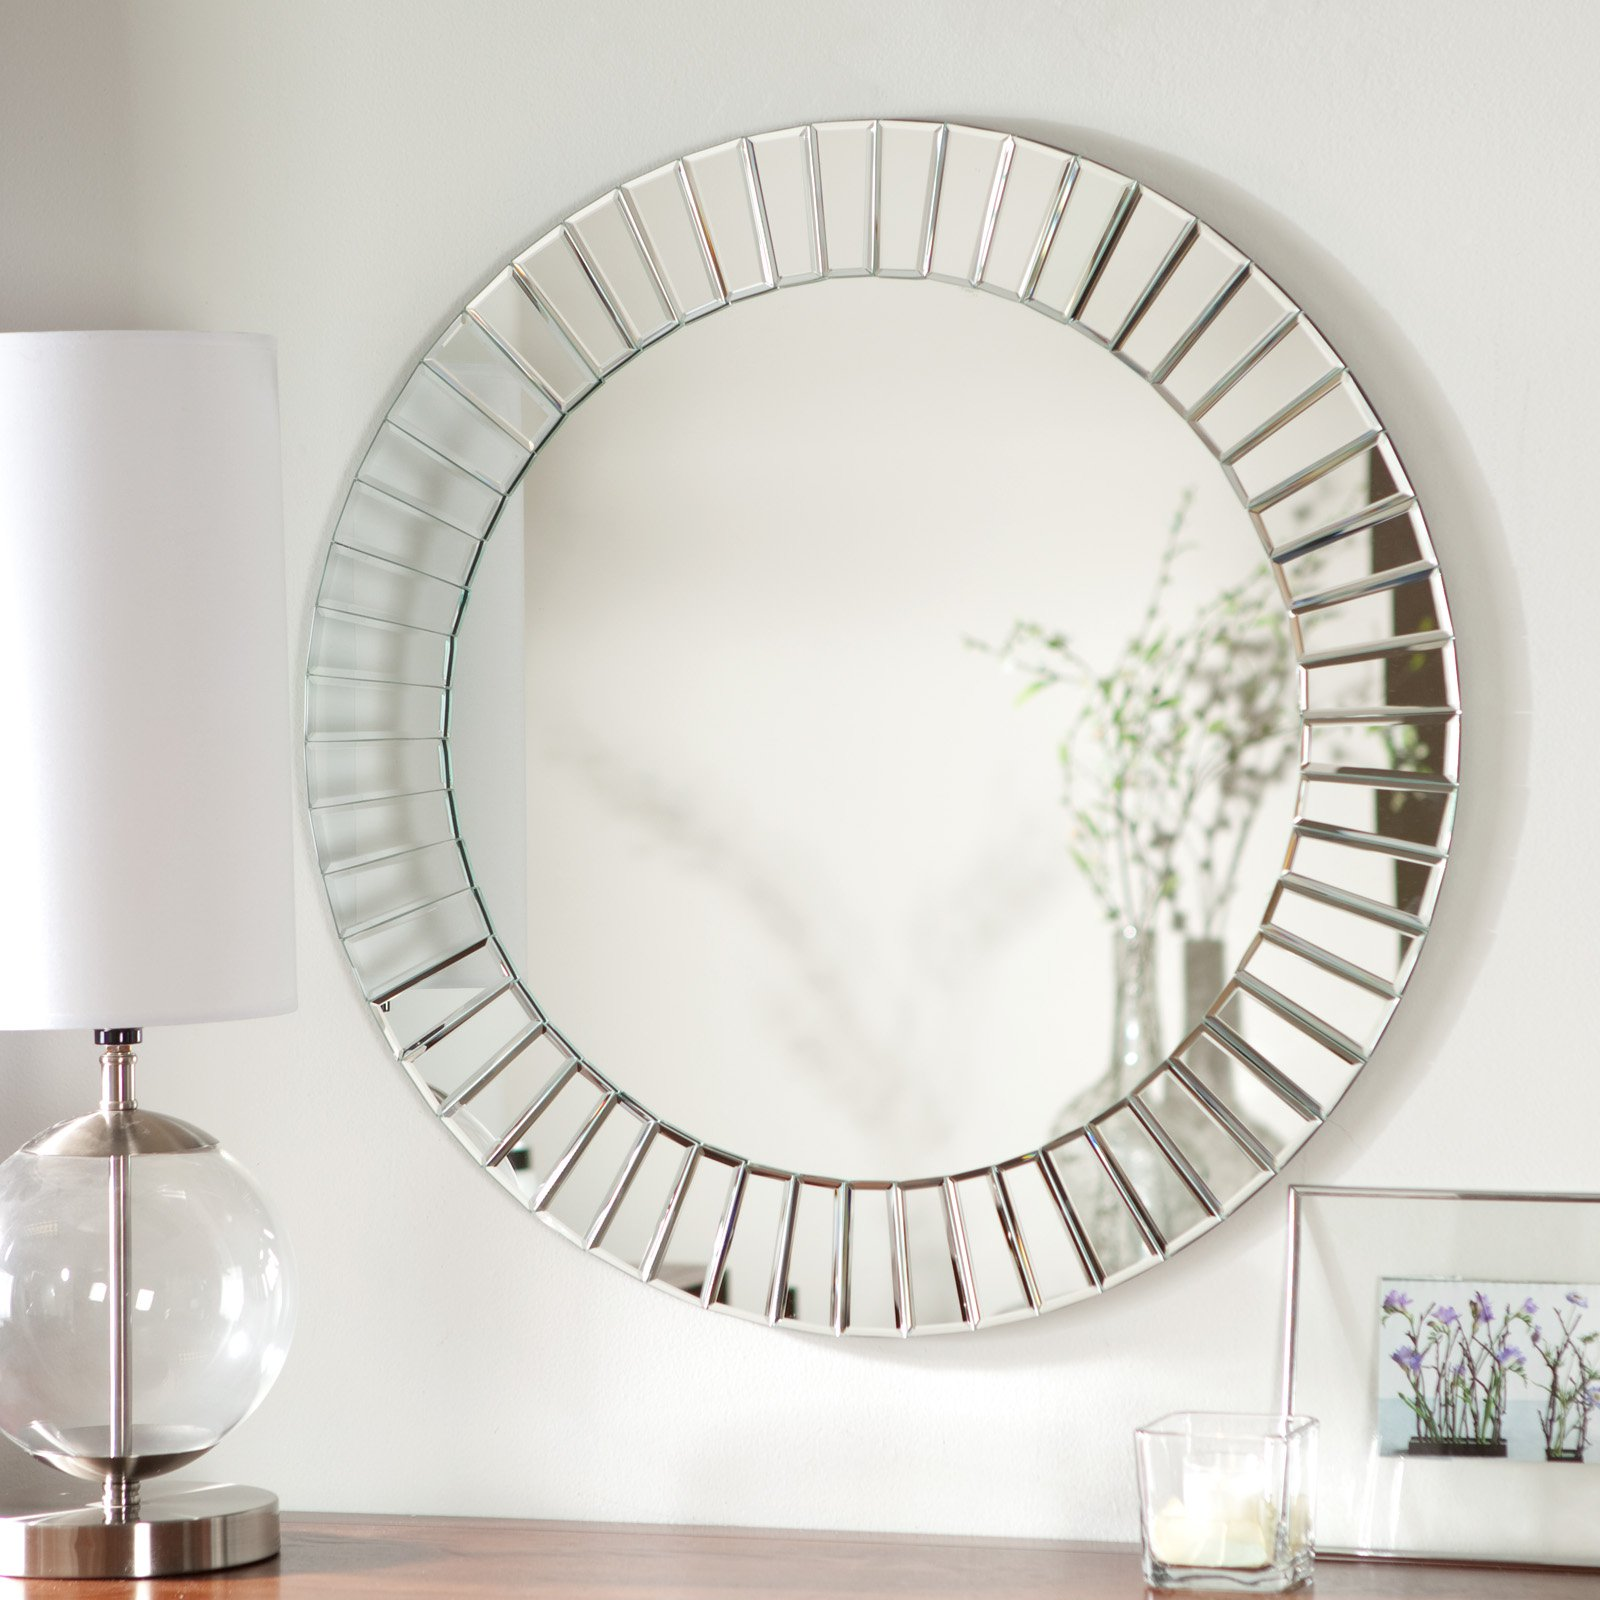 dcor wonderland fortune modern frameless beveled wall mirror 276 diam in walmartcom - Decorative Mirror Manufacturers